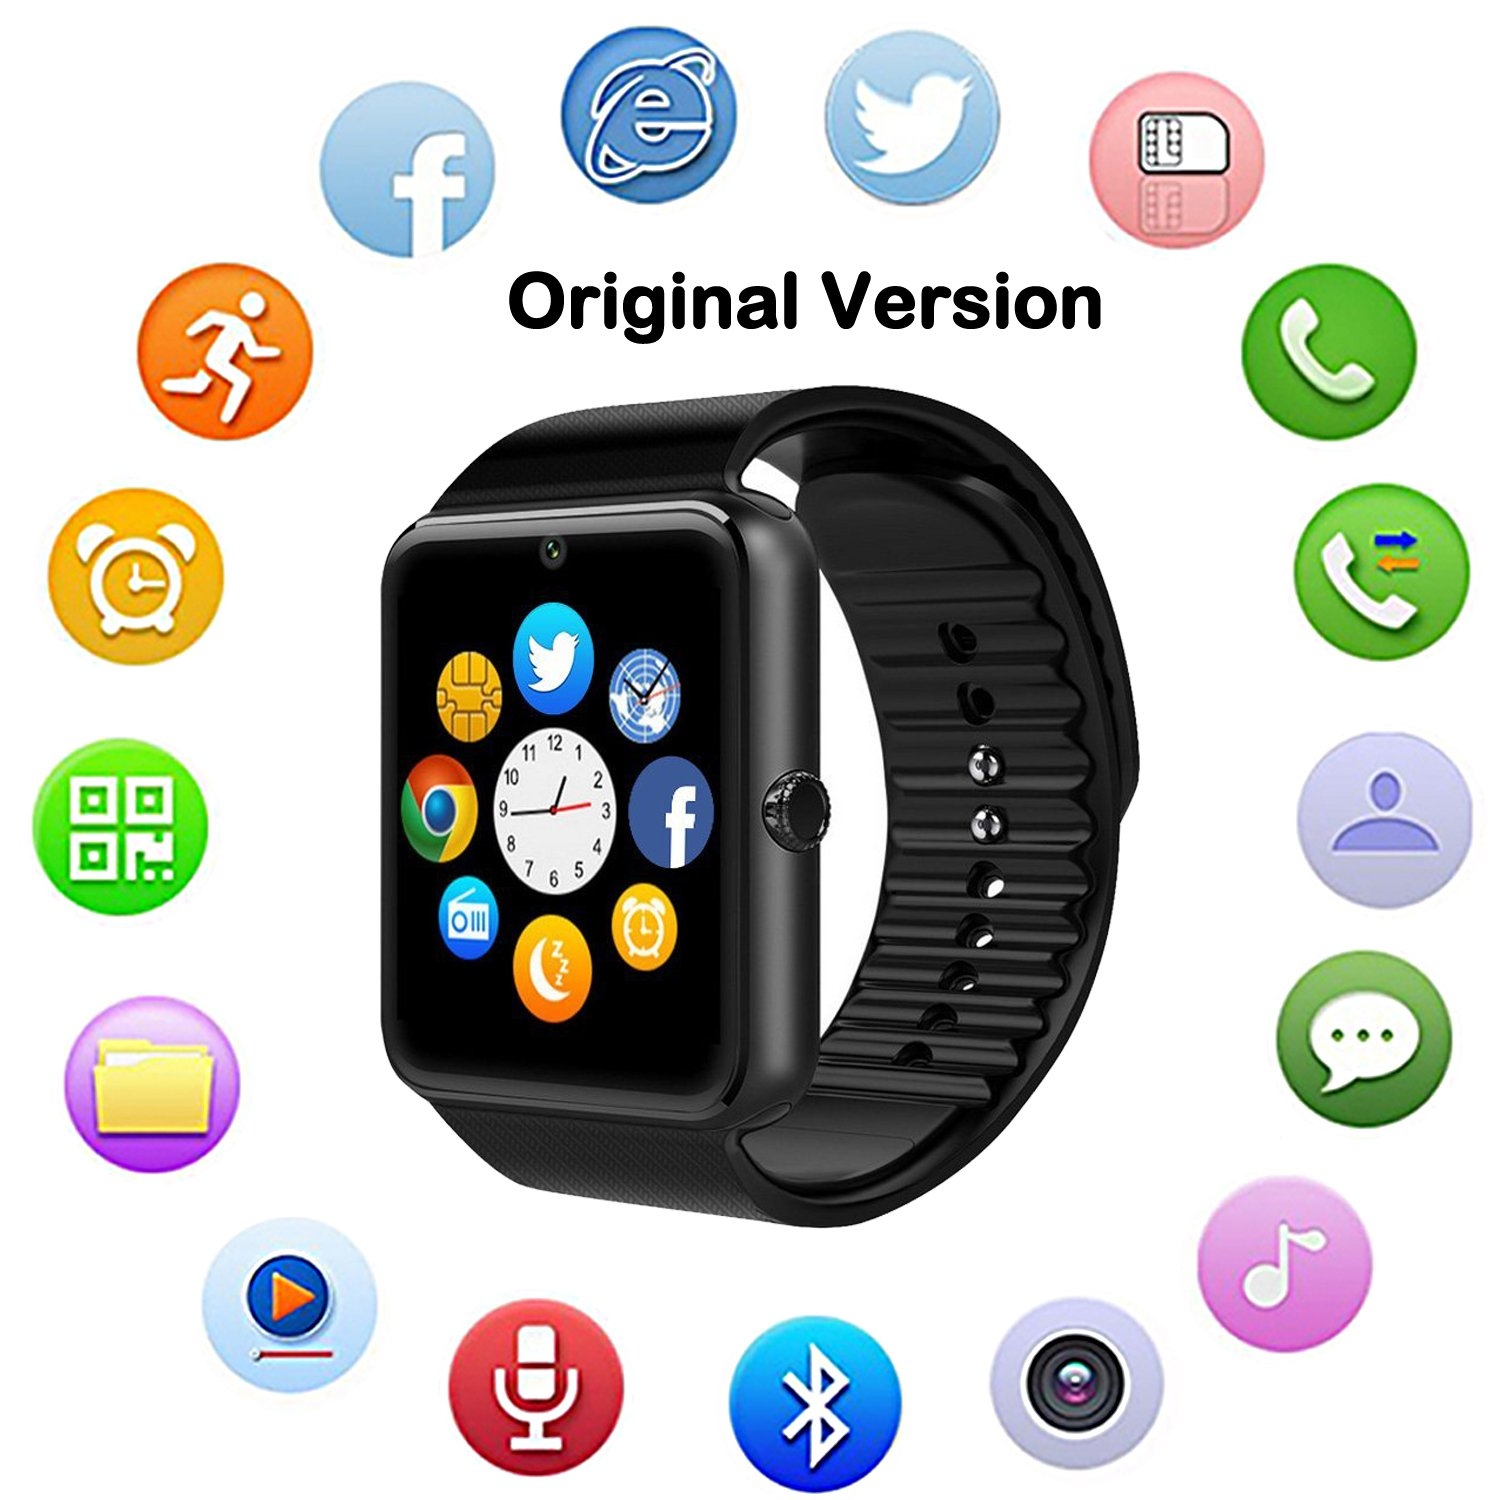 Bluetooth Smart Watch with Camera, Touch Screen Smartwatch with Sim Card Slot Fitness Tracker for Android/Samsung /iOS Apple Smart Phones (Original Version)